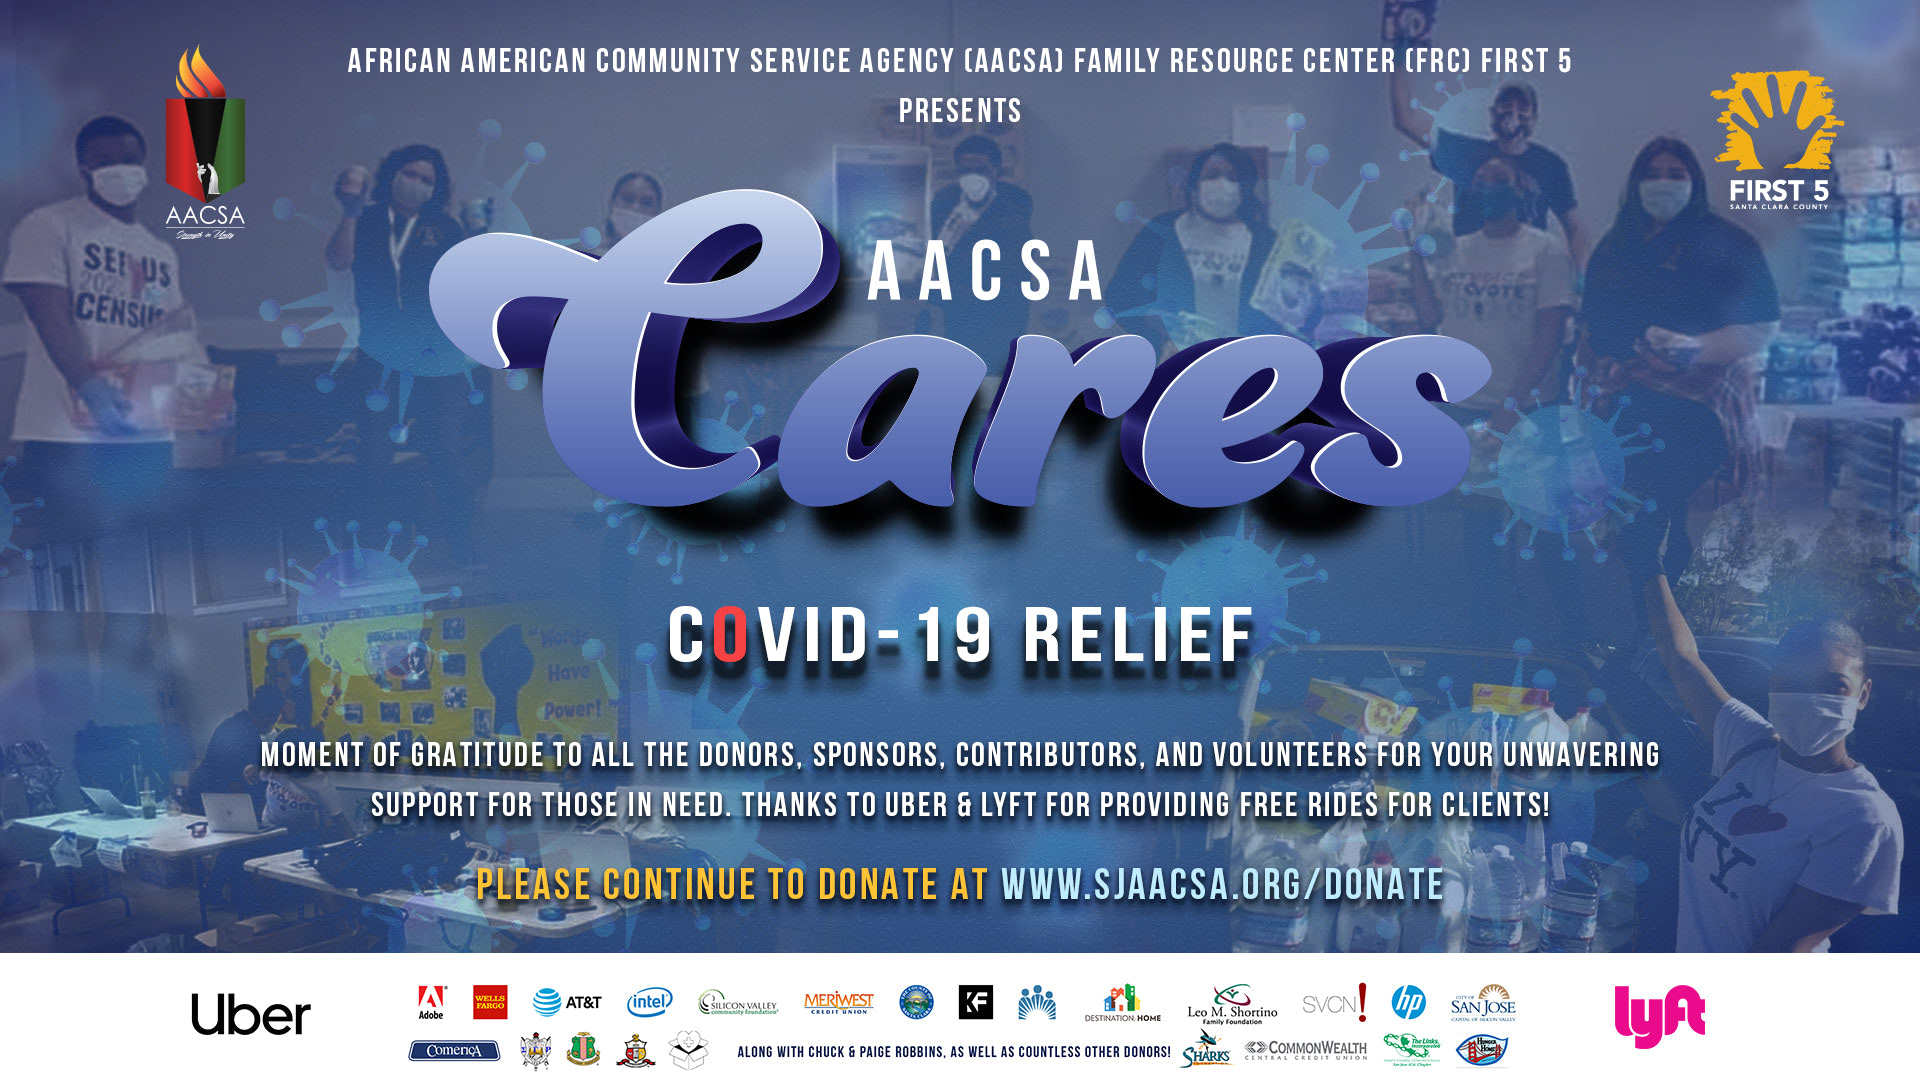 AACSA CARES Banner. Covid-19 Relief. Gratitude to all the donors, sponsors, contributors and volunteers for your unwavering support for those in need. Thanks to Uber & Lyft for providing free rides for clients!. Please continue to donate at www.sjaacsa.org/donate